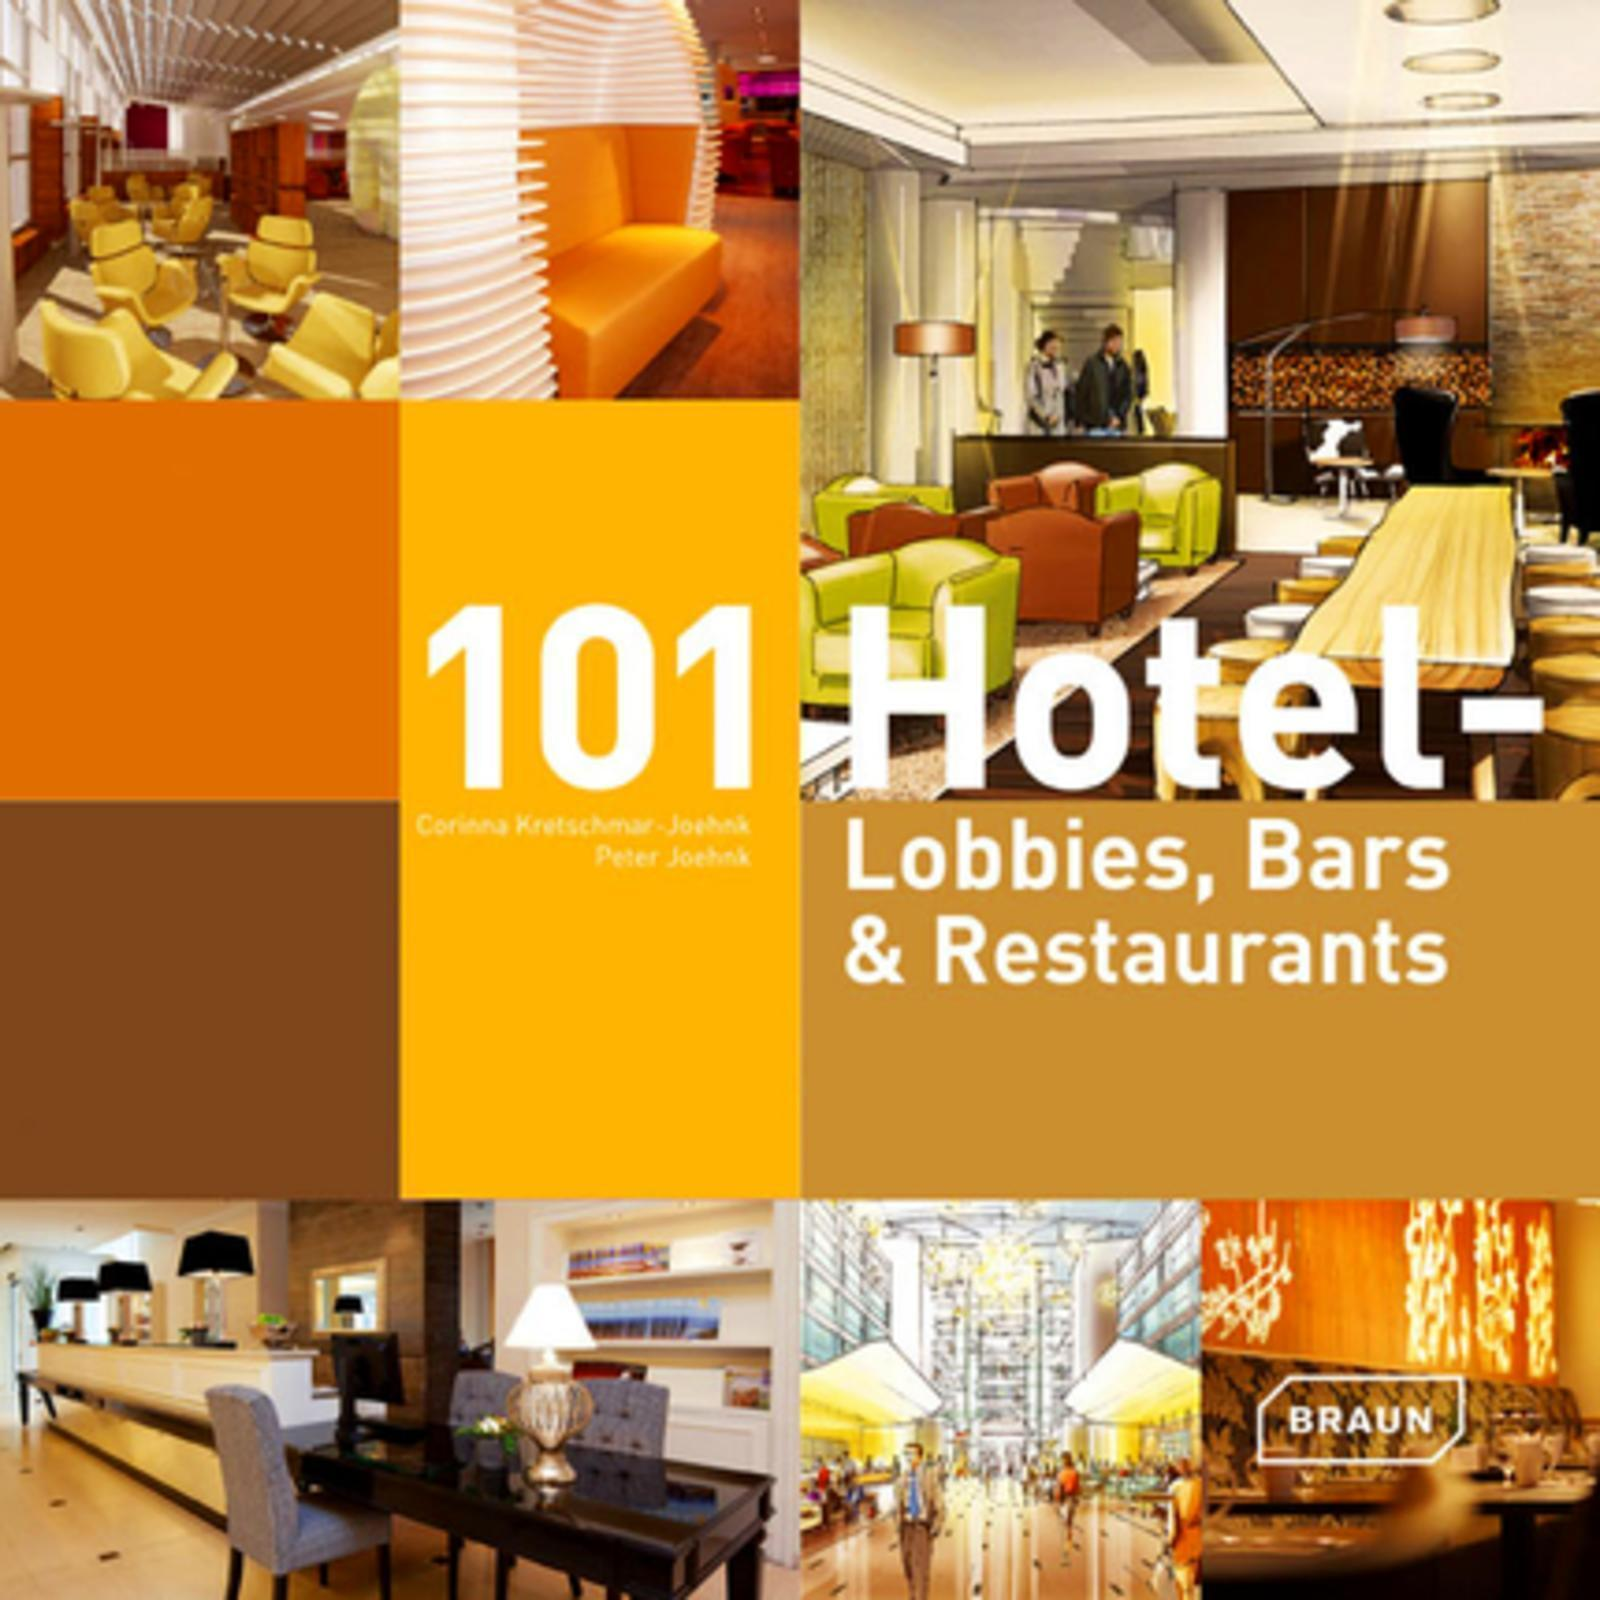 101 HOTEL - LOBBIES, BARS ET RESTAURANTS.